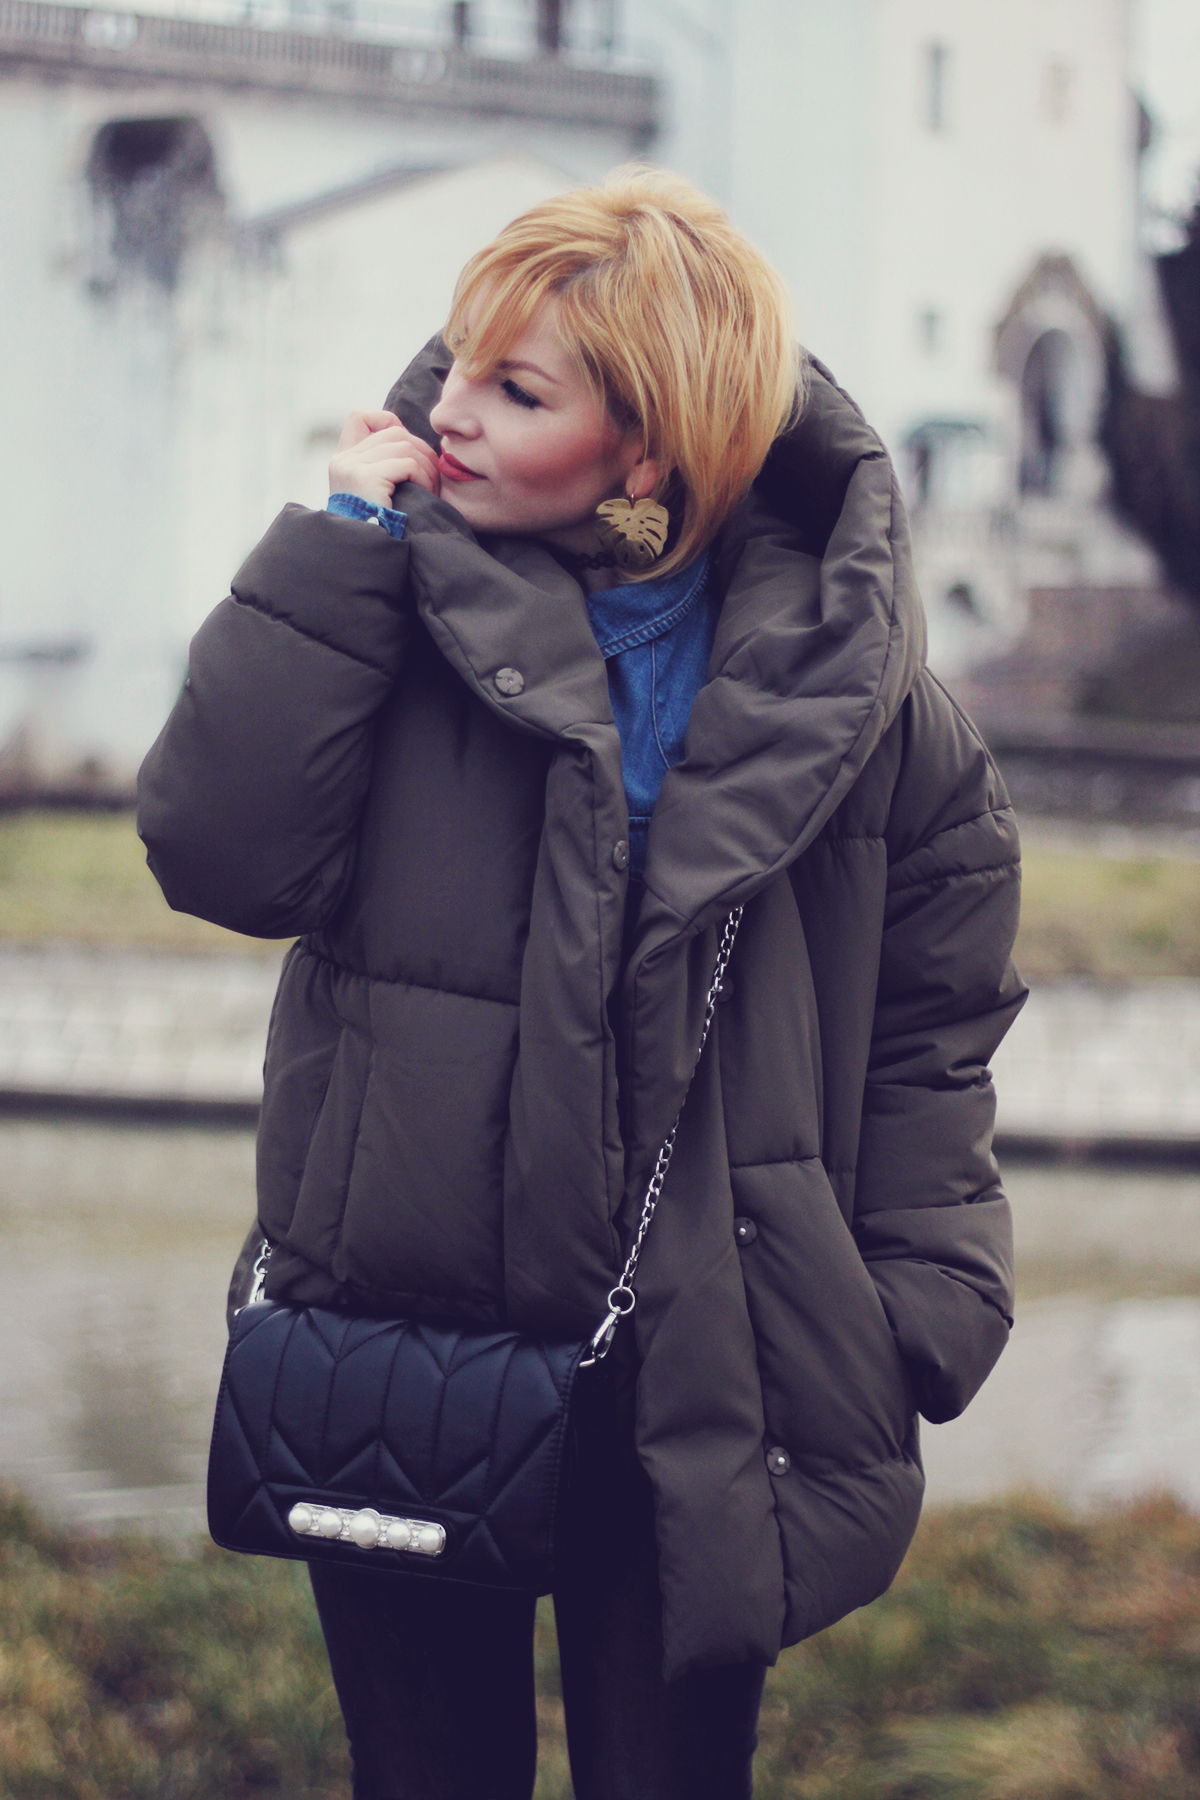 winter fashion, padded jacket, chevron bag with pearl detailing, jeans, matte make-up, leaf earrings, choker